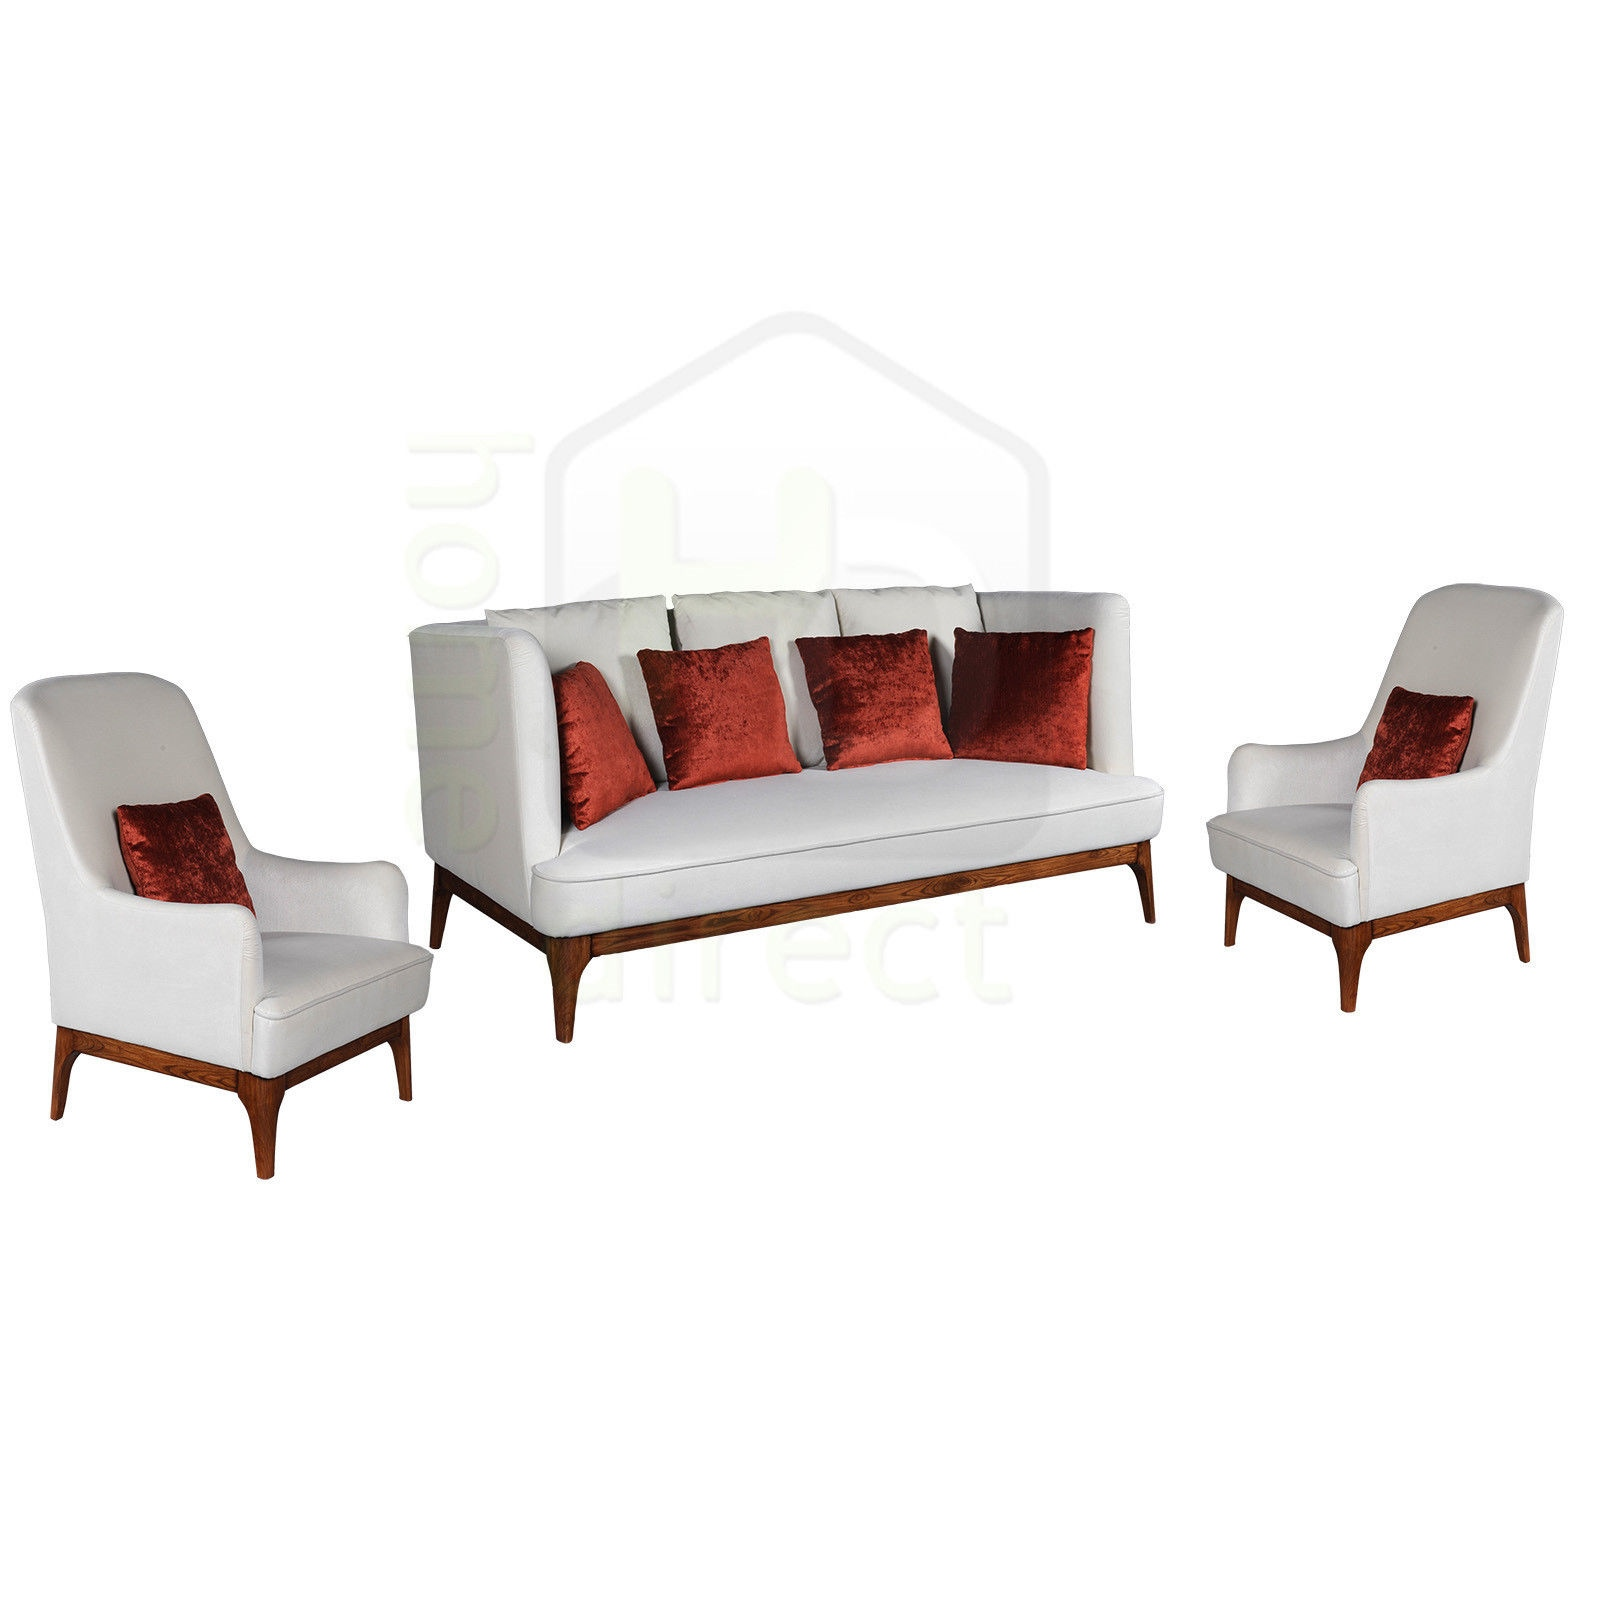 3 +1+ 1 Seater French Provincial Scandinavian Danish Retro Sofa Couch  Lounge Set